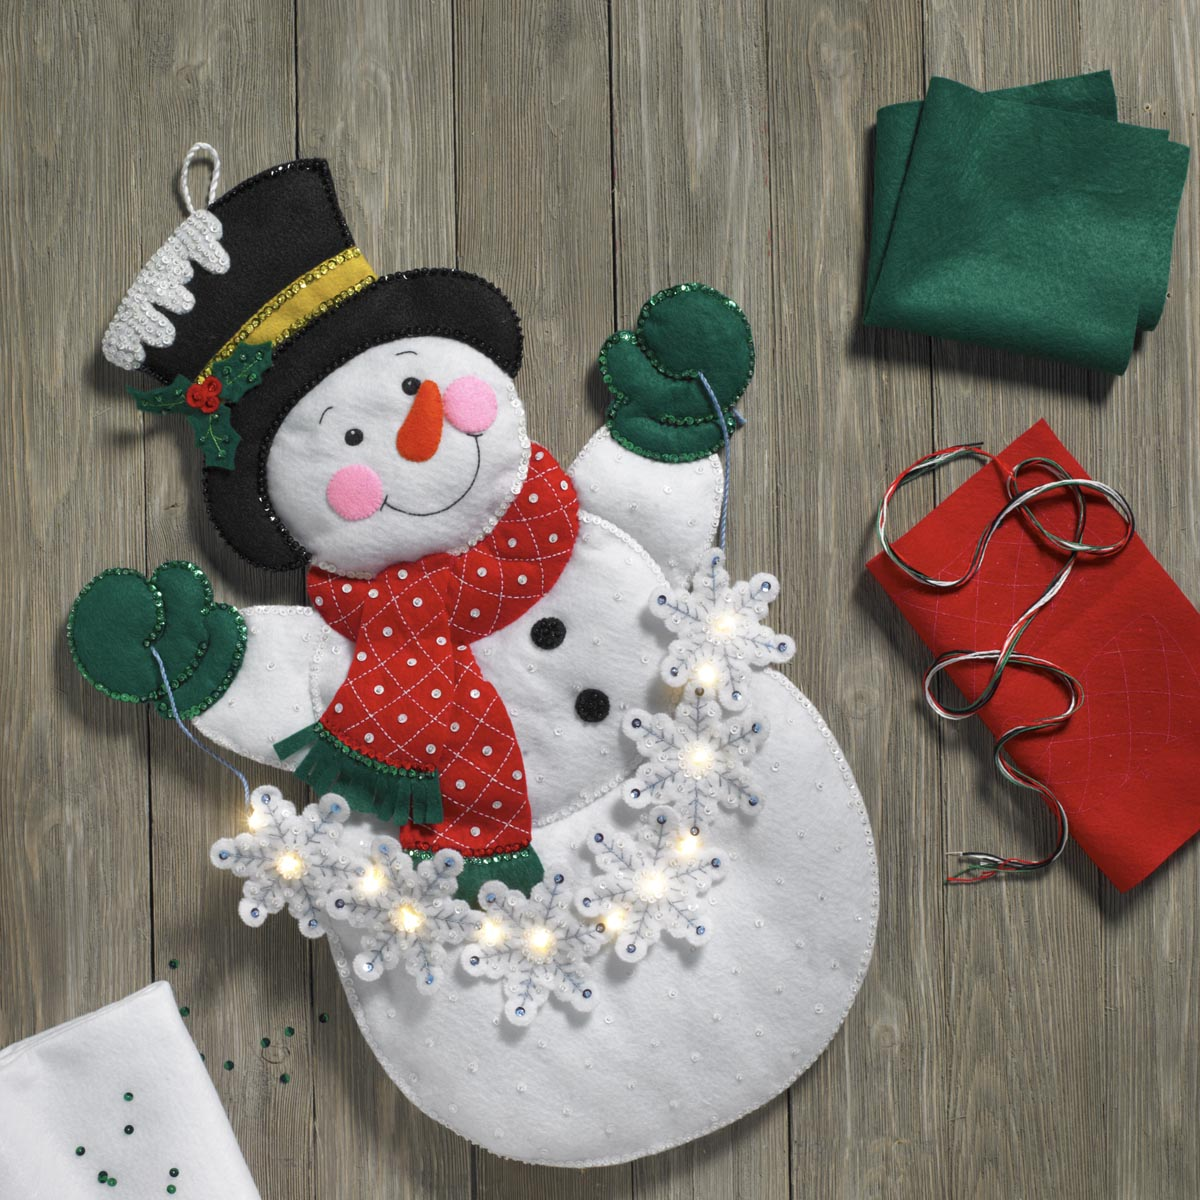 Bucilla ® Seasonal - Felt - Home Decor - Snowman with Snowflakes Wall Hanging with Lights